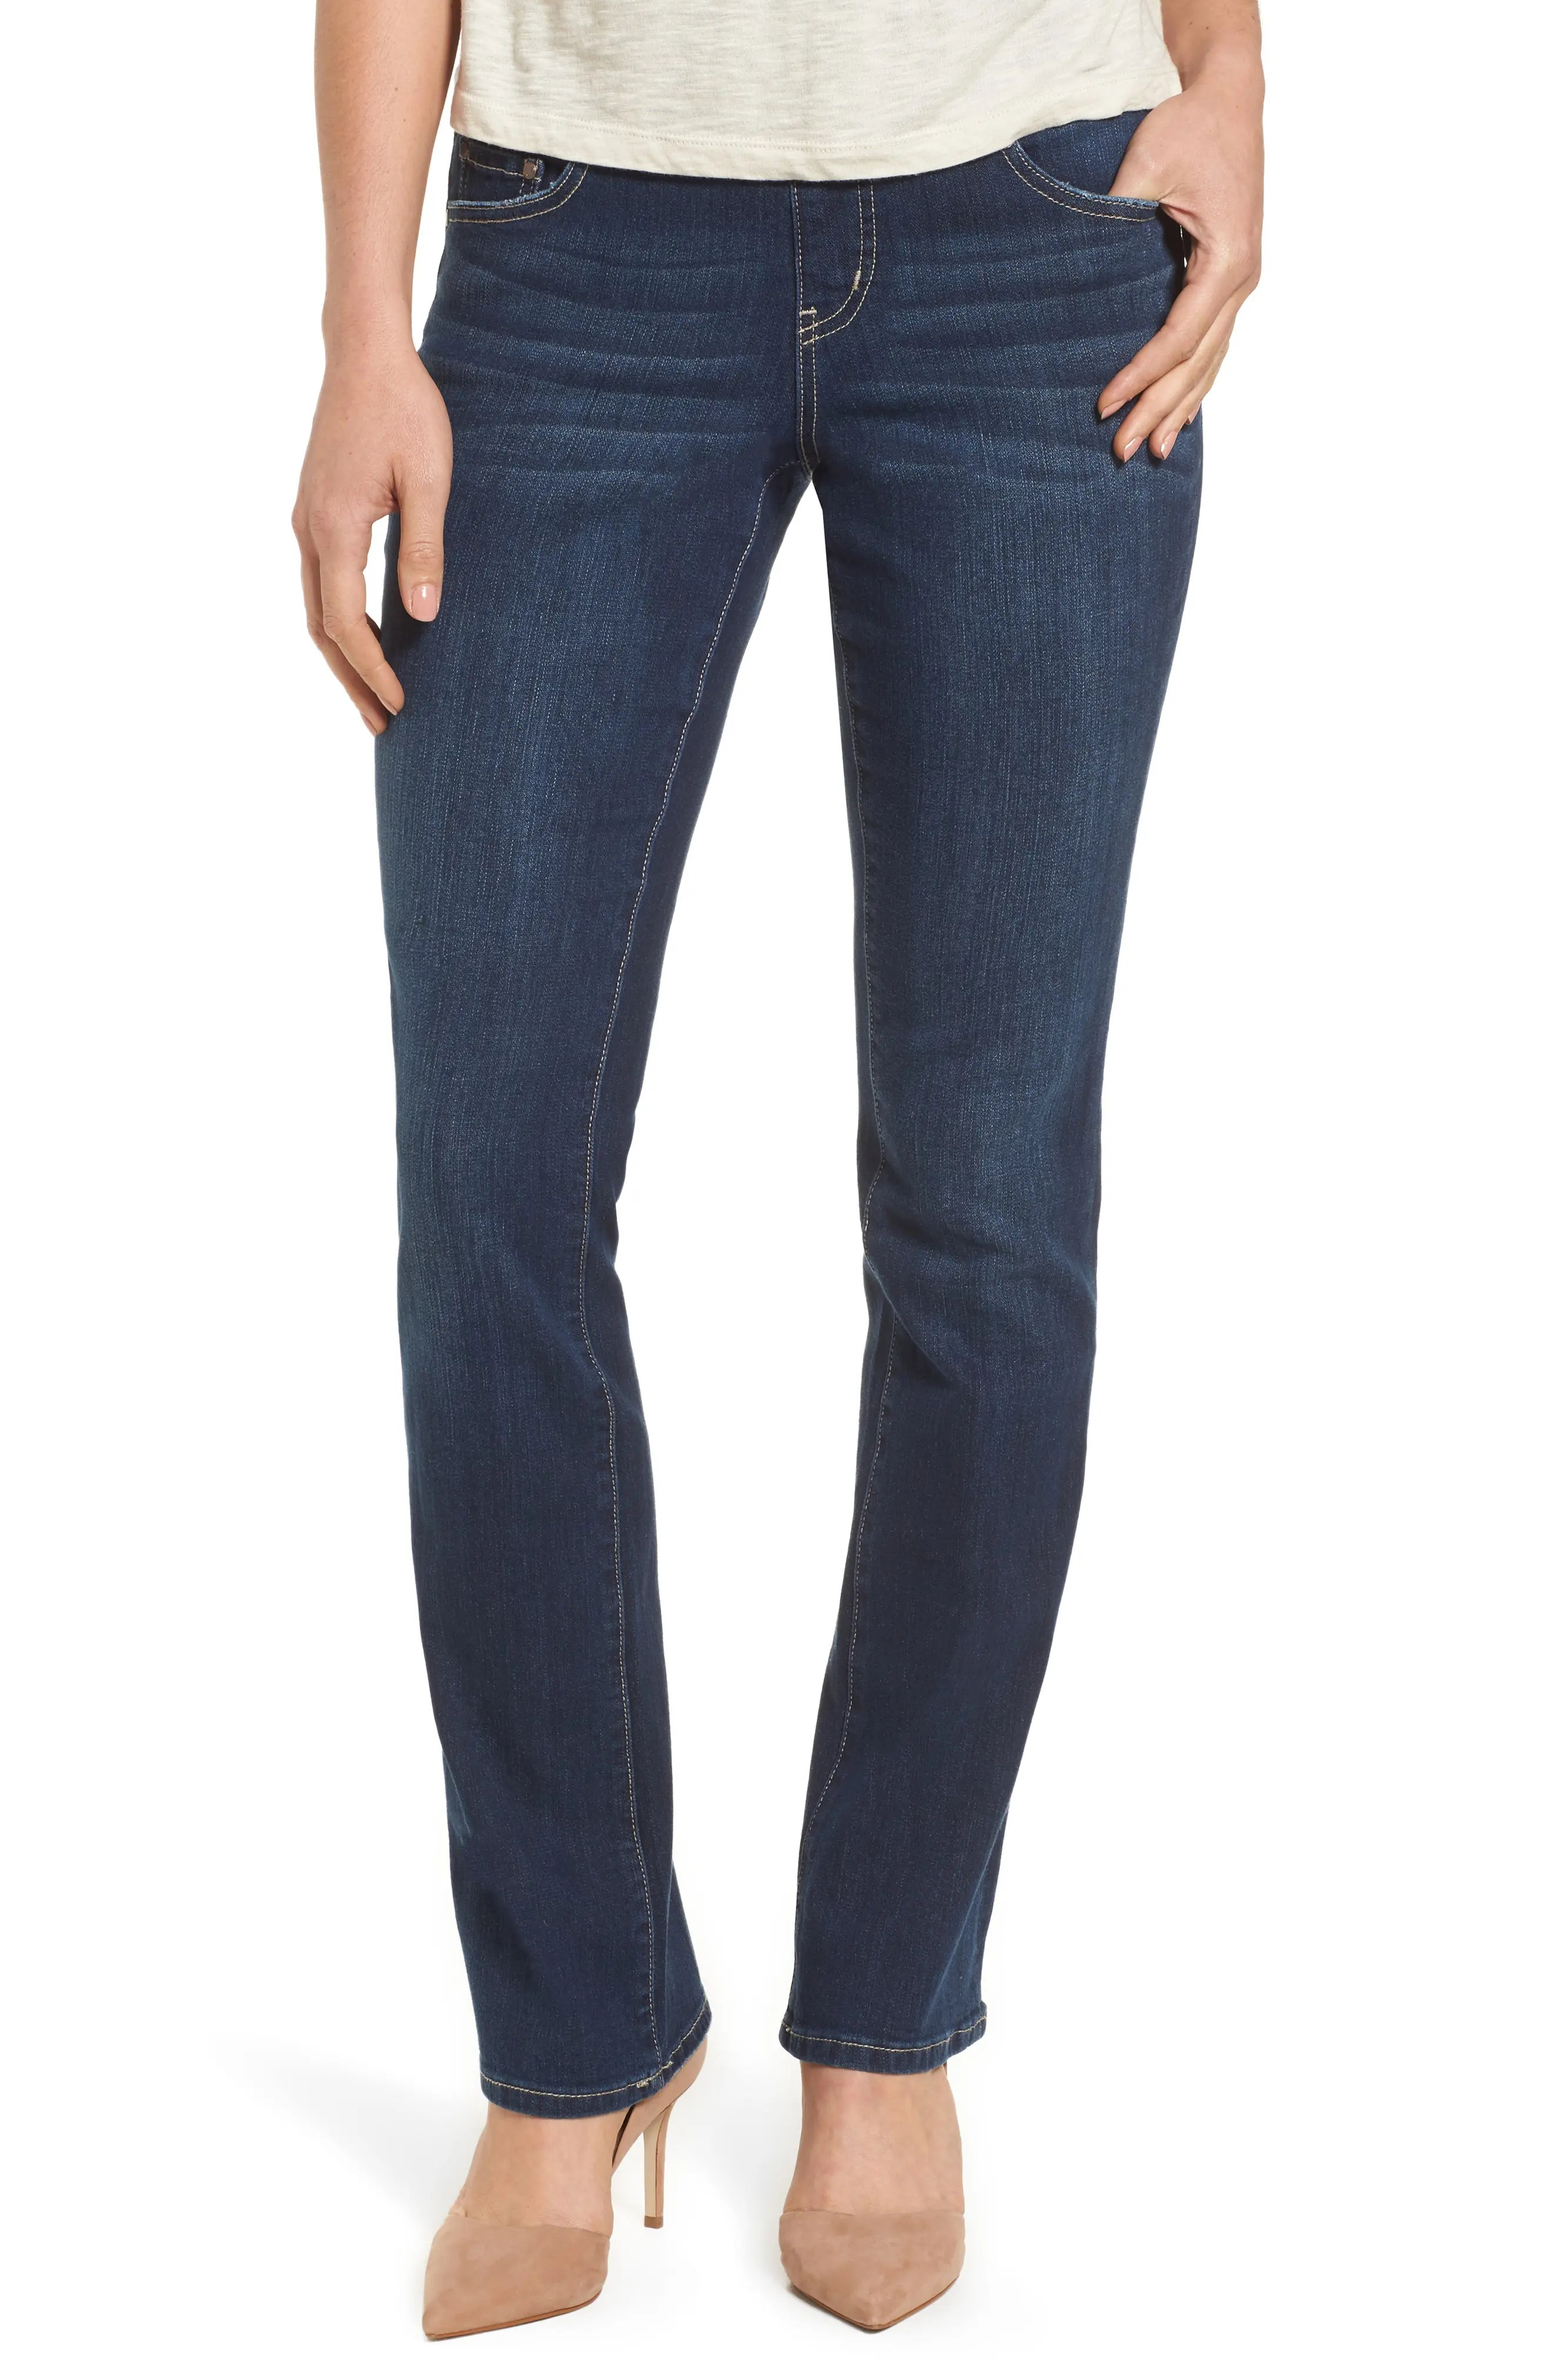 Jag jeans paley stretch bootcut regular  petite also clothing nordstrom rh shoprdstrom